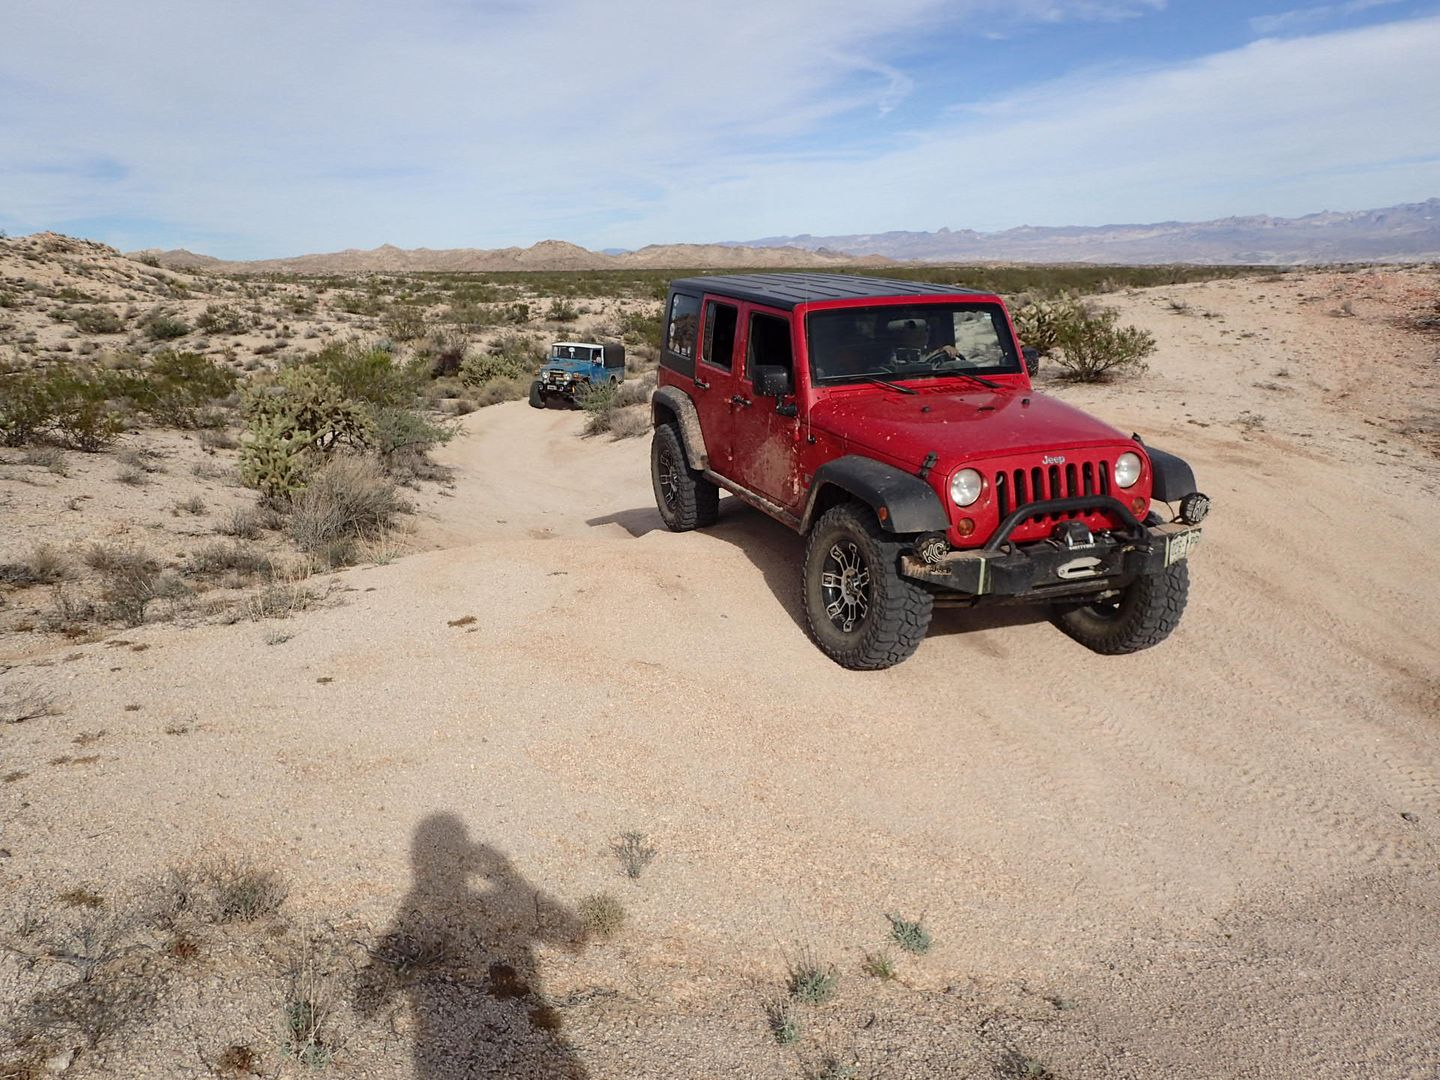 Mojave Road - Waypoint 10: Obstacle